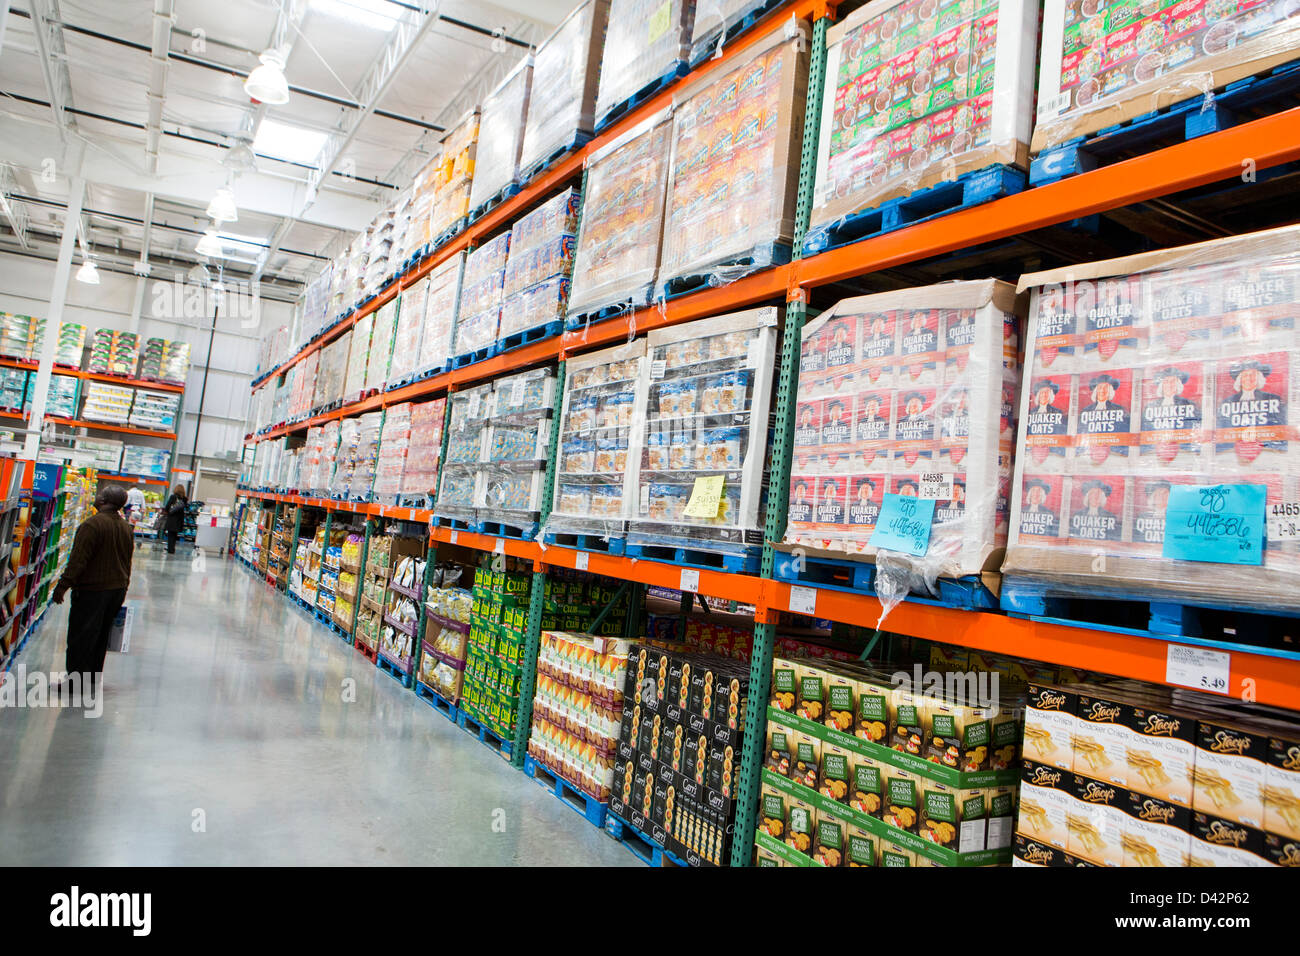 Products on display at a costco wholesale warehouse club stock photo products on display at a costco wholesale warehouse club stock photo 54151050 alamy thecheapjerseys Images